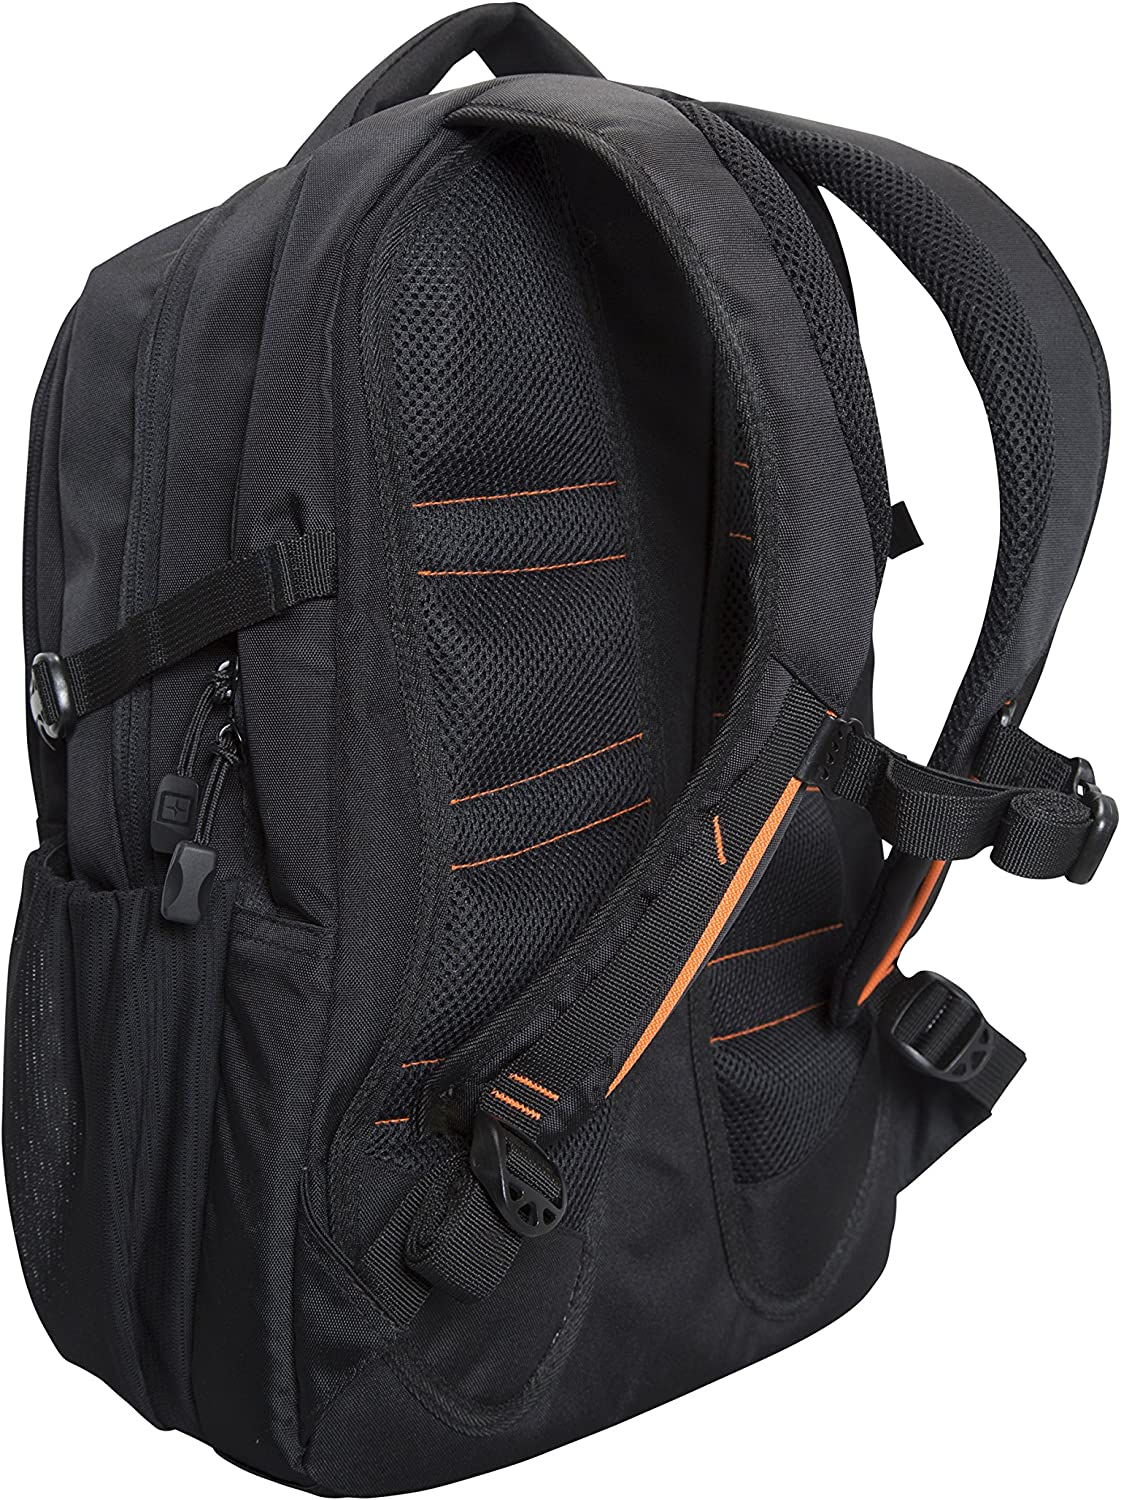 Laptop Compartment Rucksack 30L Backpack Mountain Warehouse Vic Laptop Bag Durable Daypack